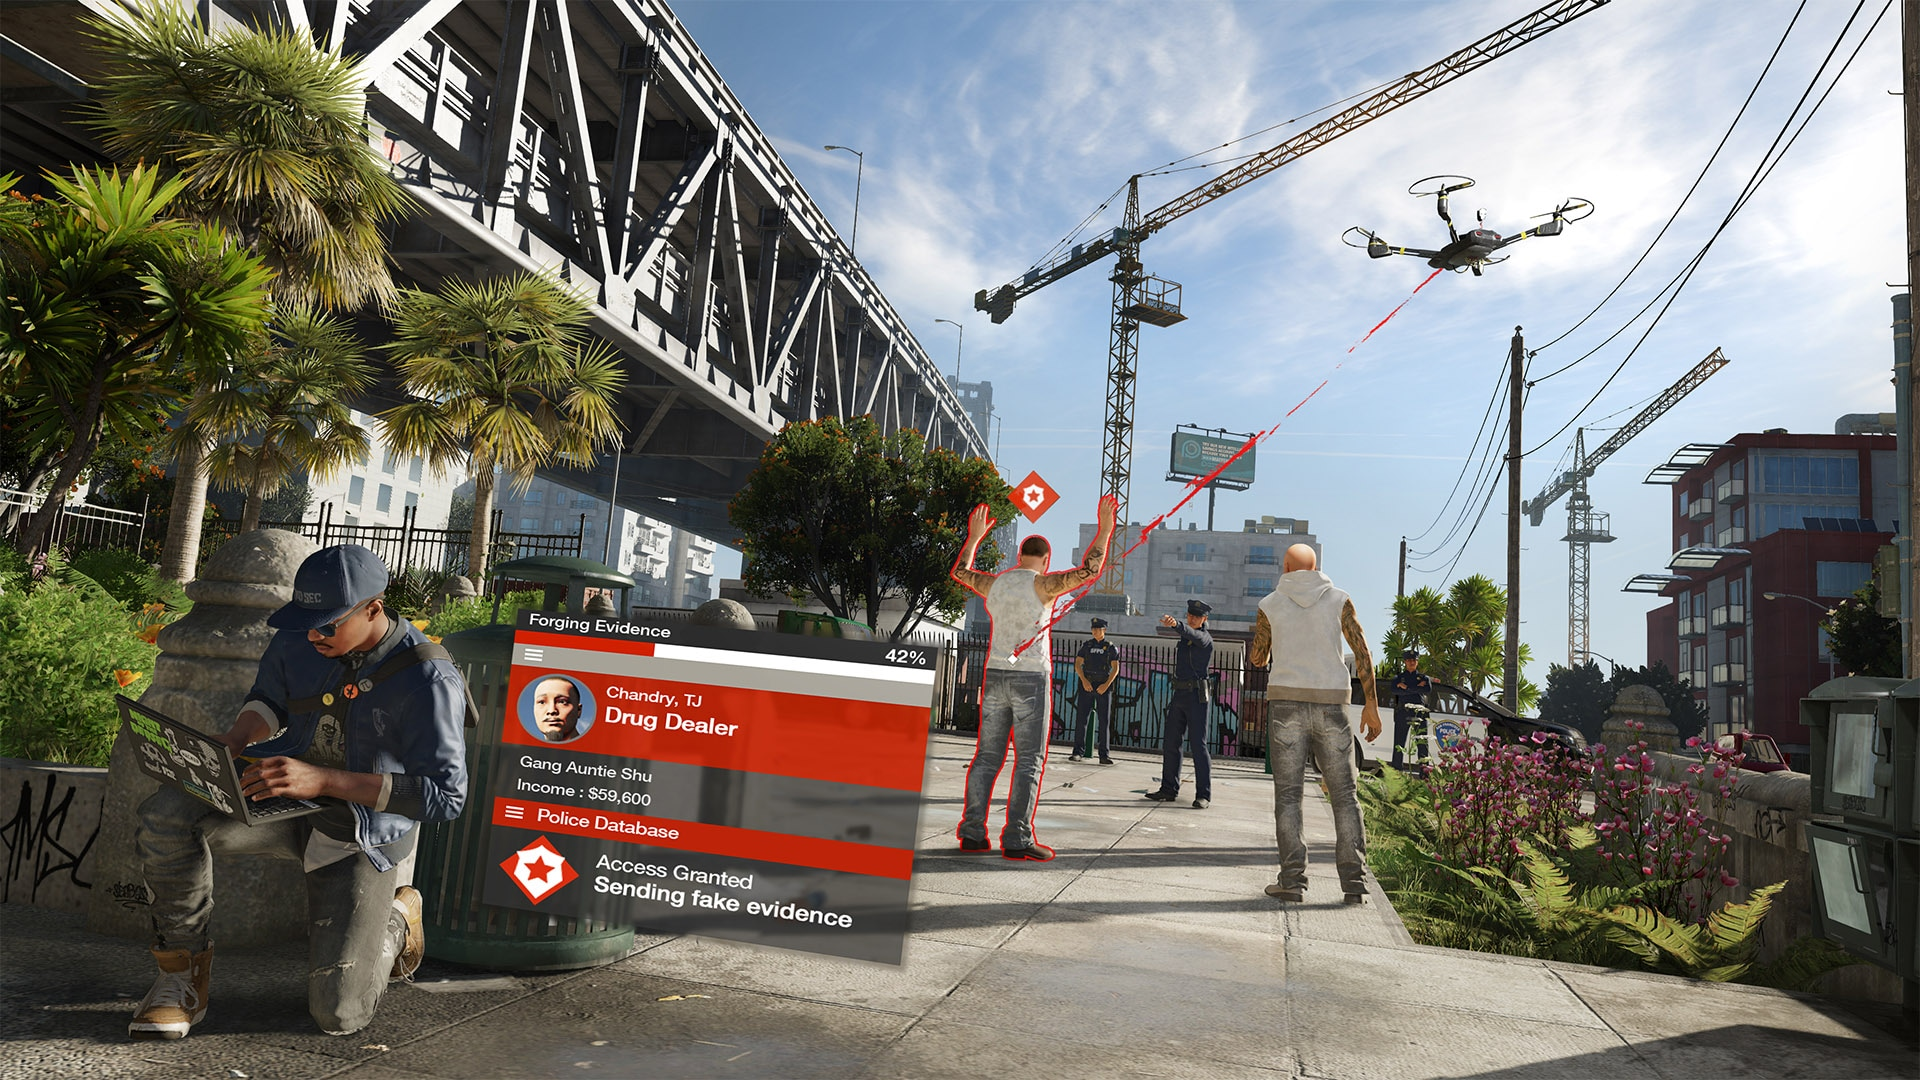 Ubisoft is giving away Watch Dogs 2 to streamers of its upcoming digital event 1